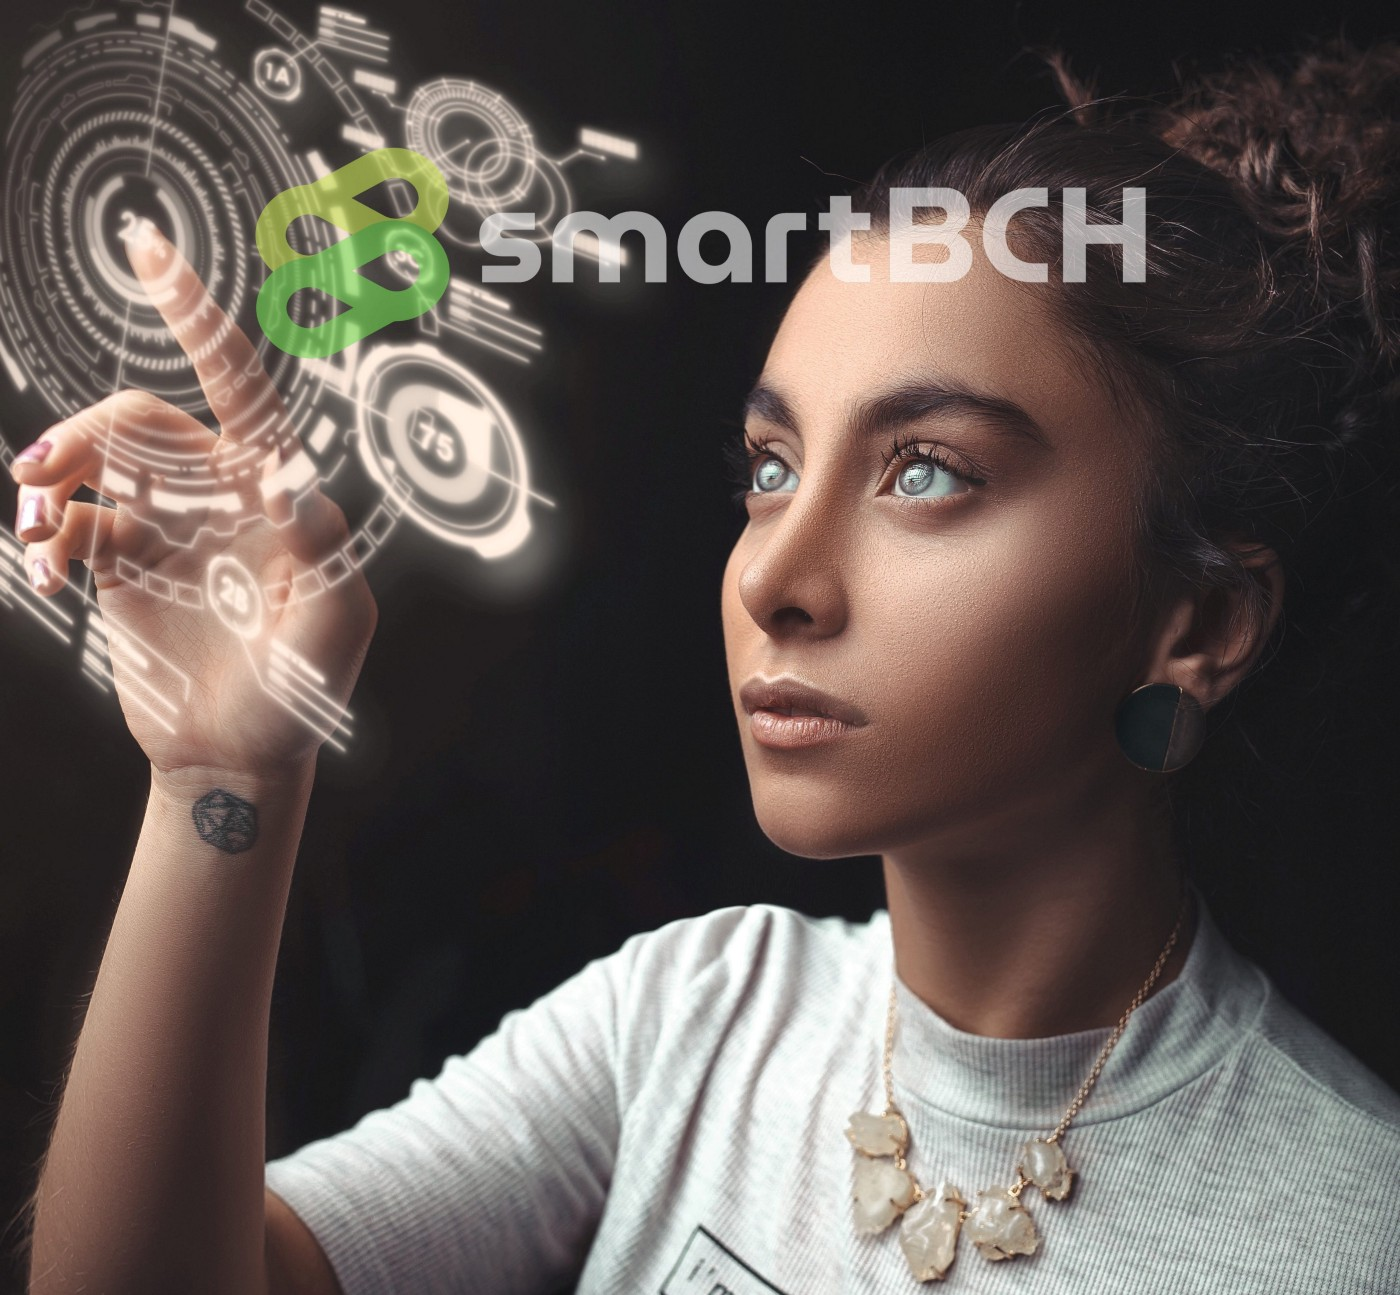 Futuristic picture depicting awoman touching a hologram screen of what could be the internet of the future. I added the smartBCH logo on top.